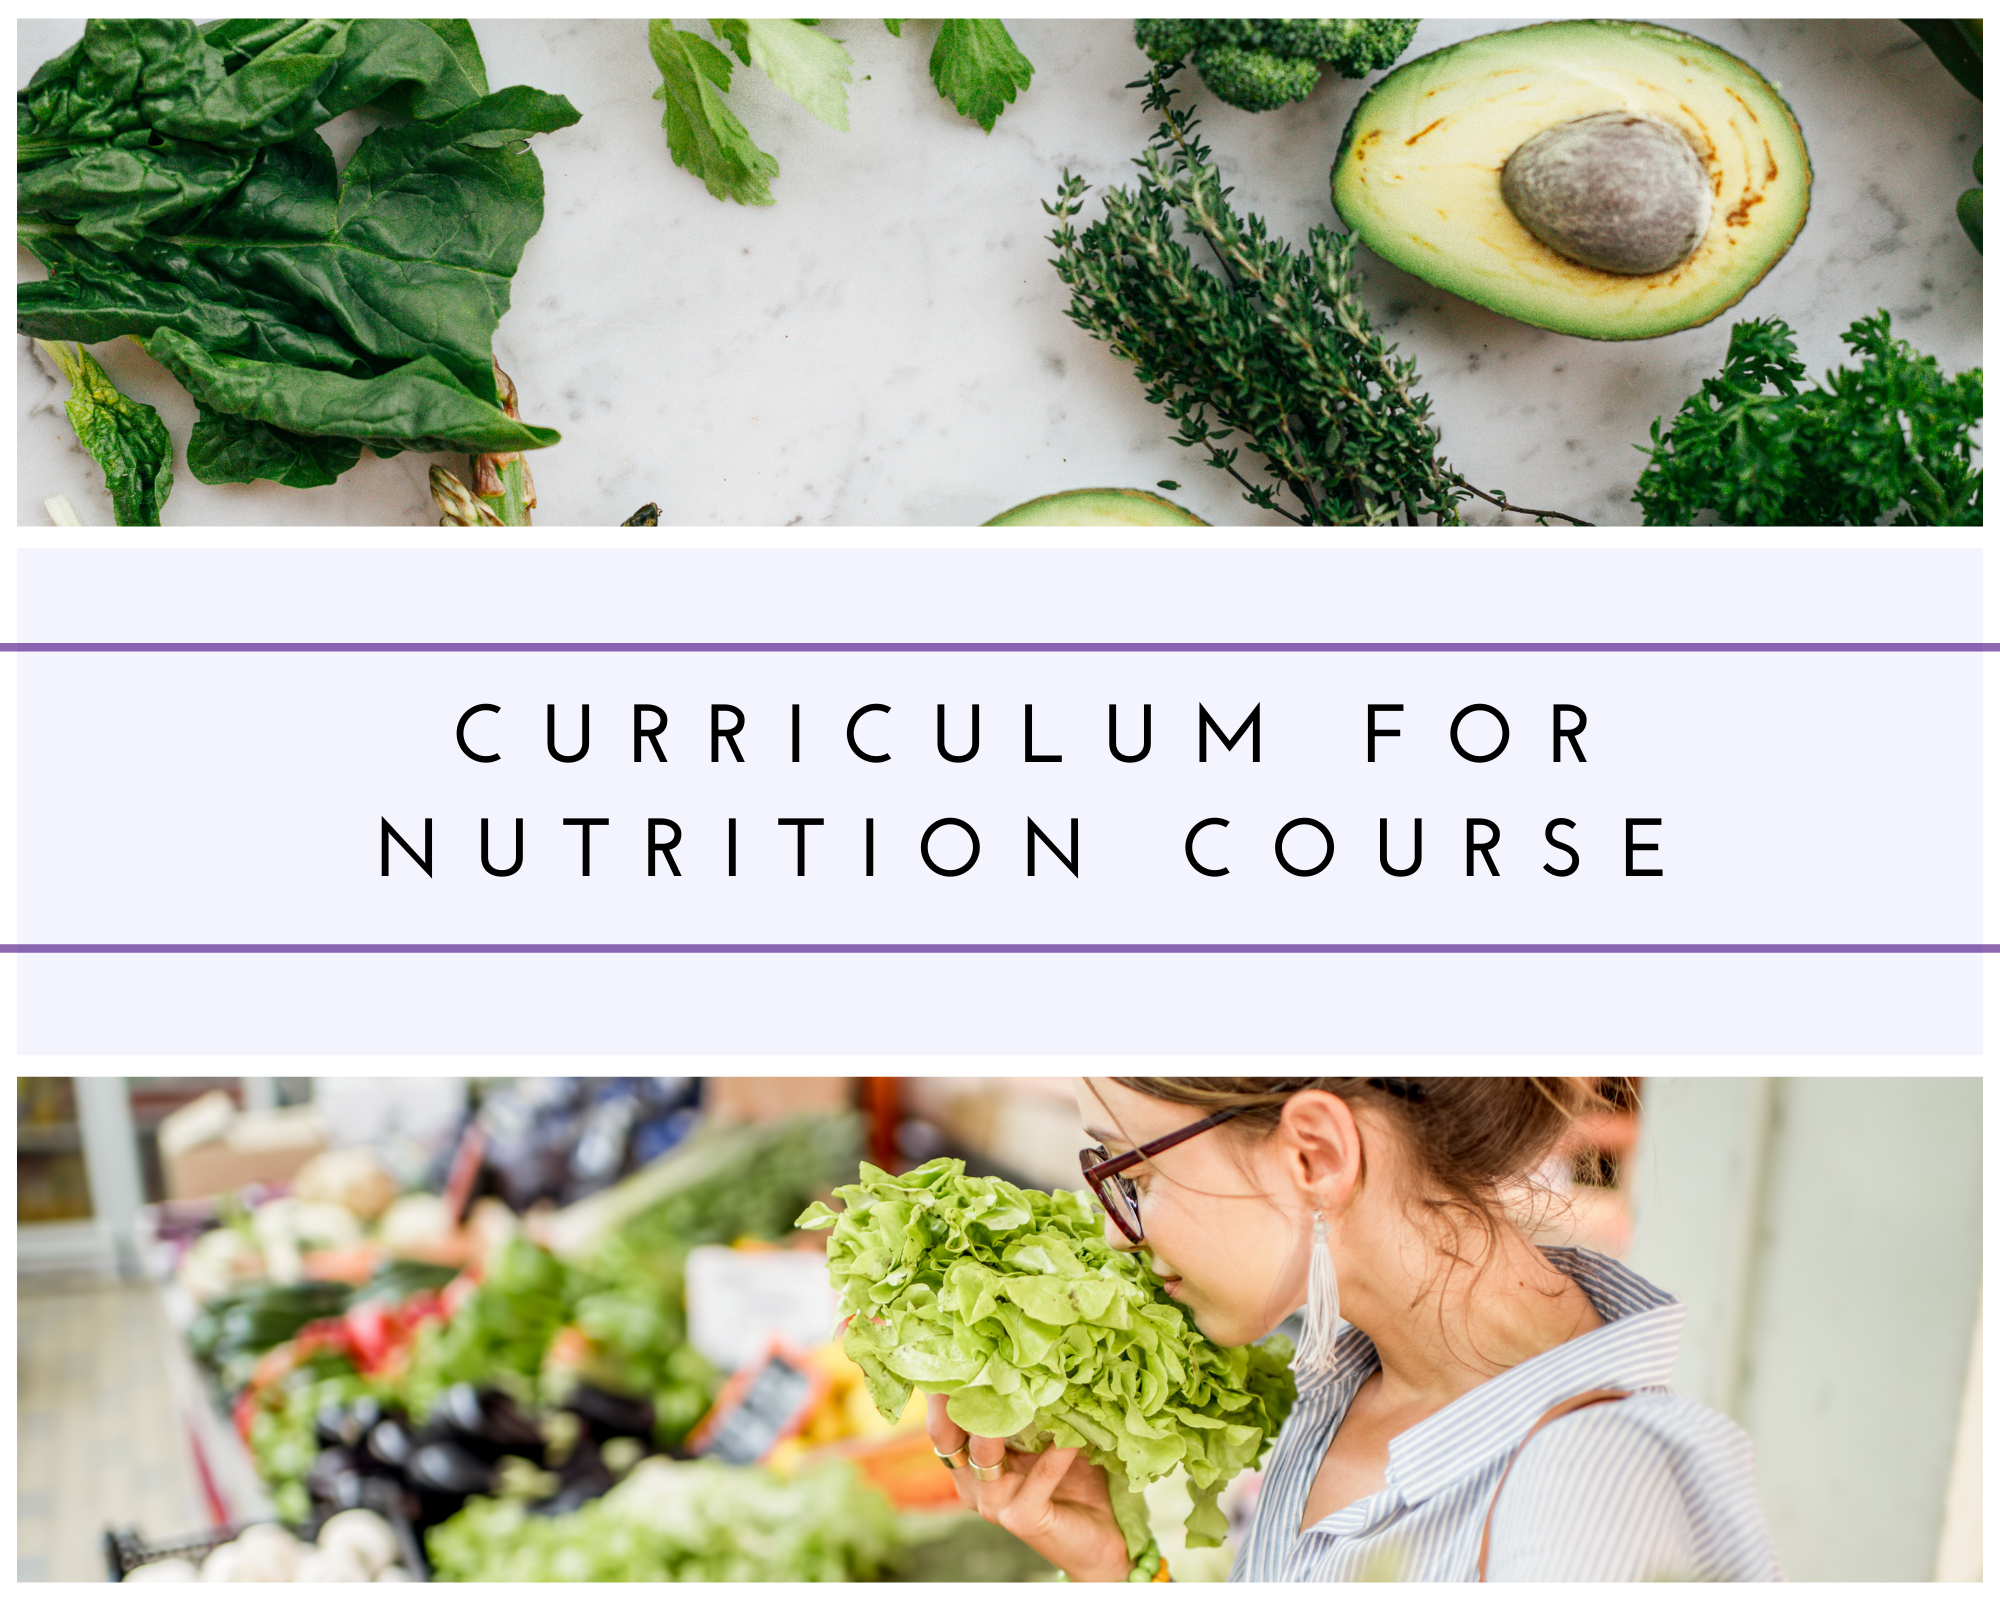 CURRICULUM FOR NUTRITION COURSE